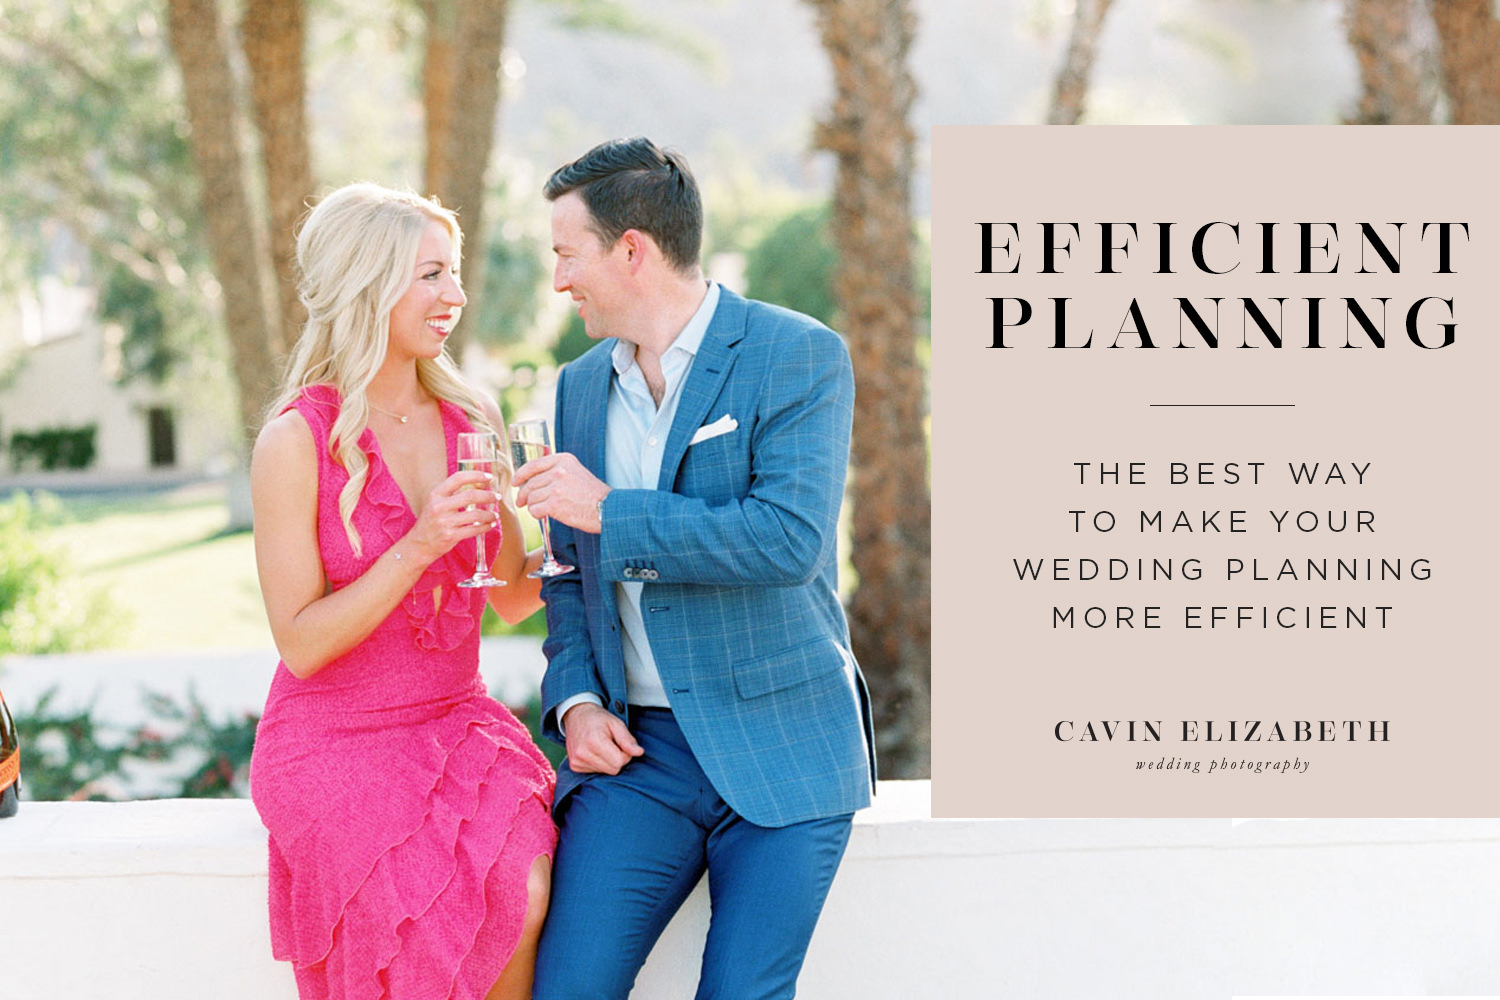 Expert Tip to Make Wedding Planning More Efficient